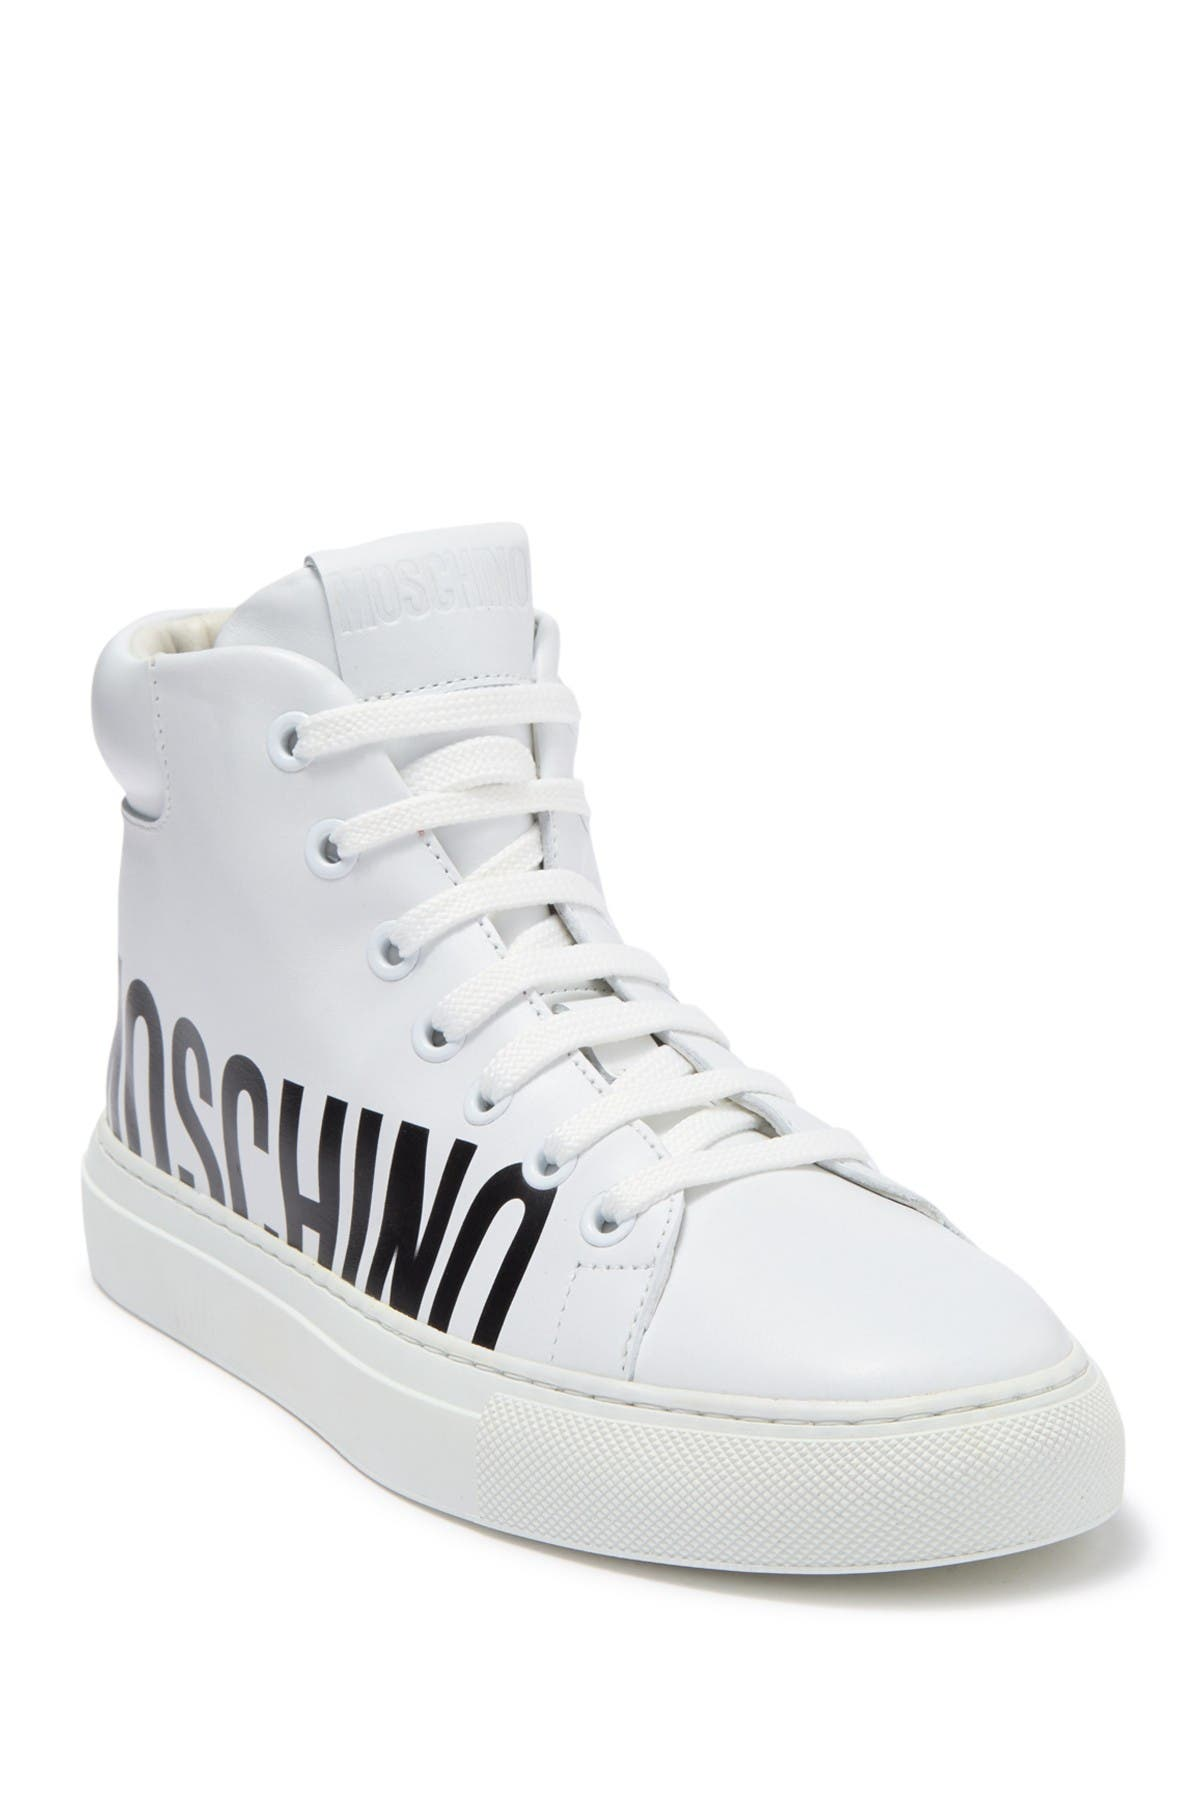 Image of MOSCHINO Logo Print High Top Sneaker